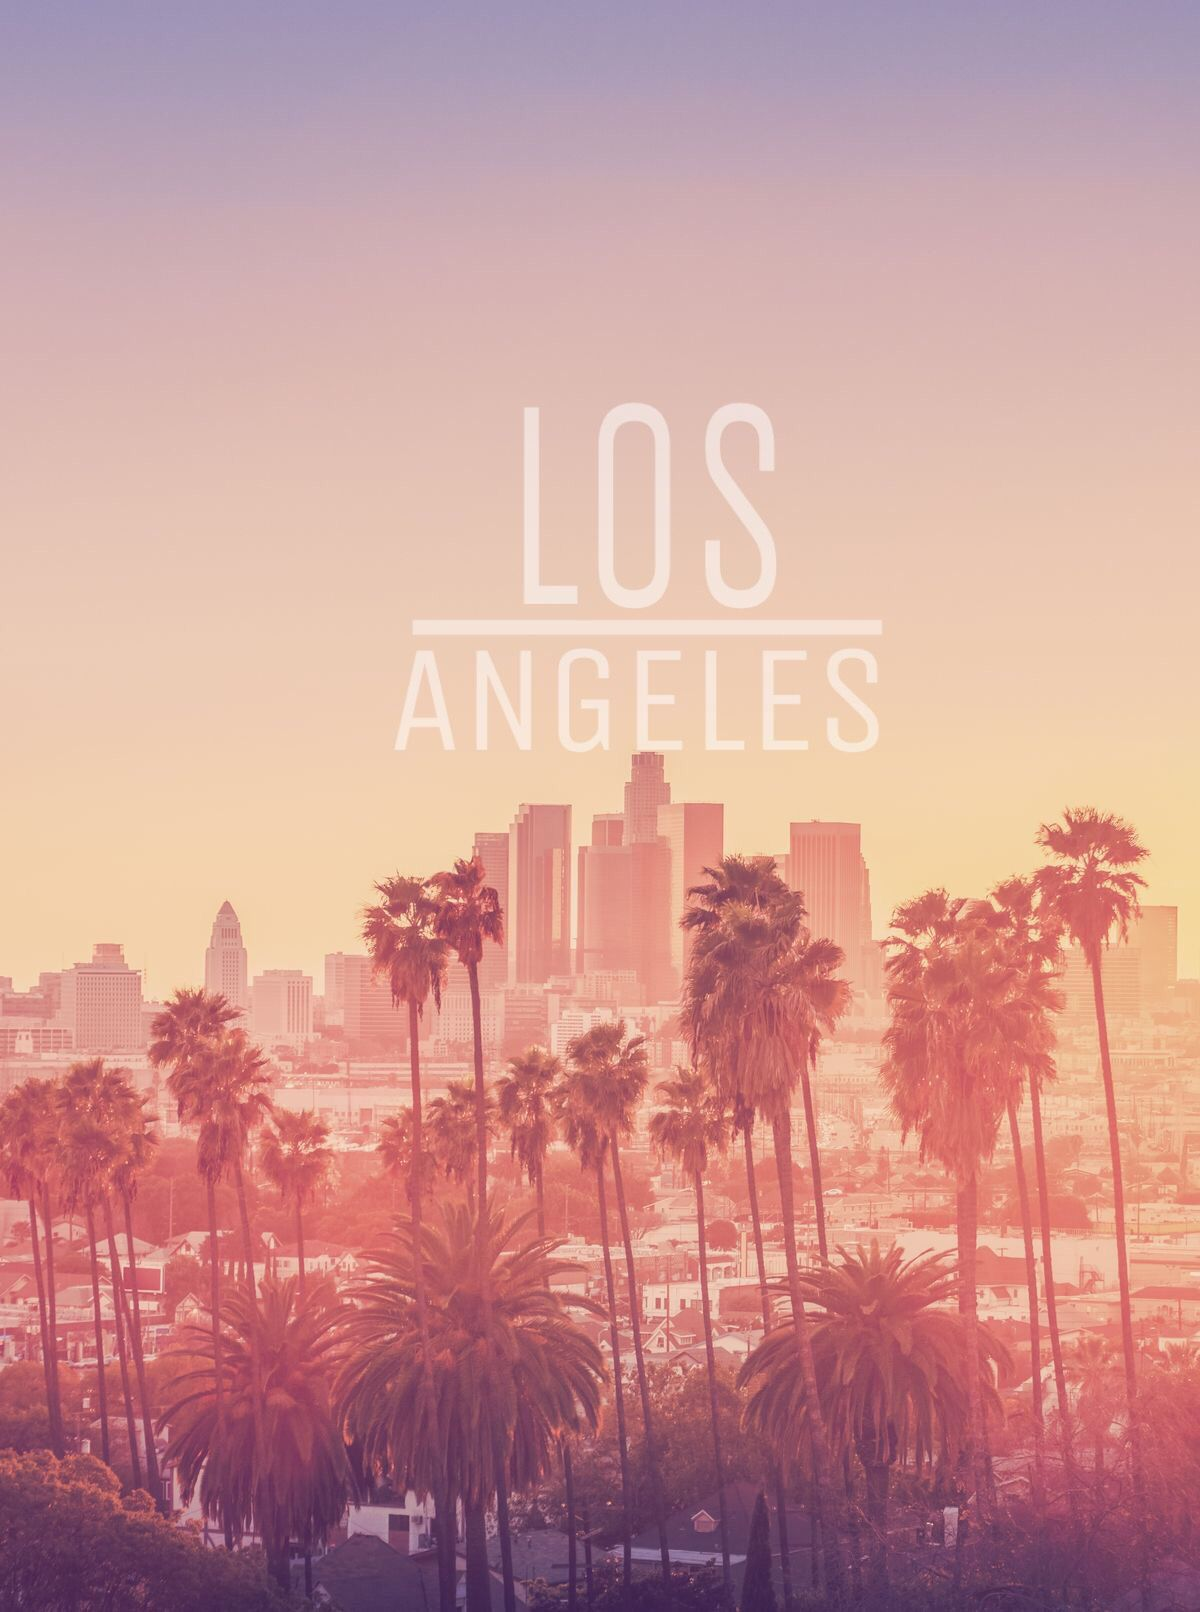 Los Angeles Wallpaper Los Angeles Wallpaper California Wallpaper Iphone Wallpaper Los Angeles